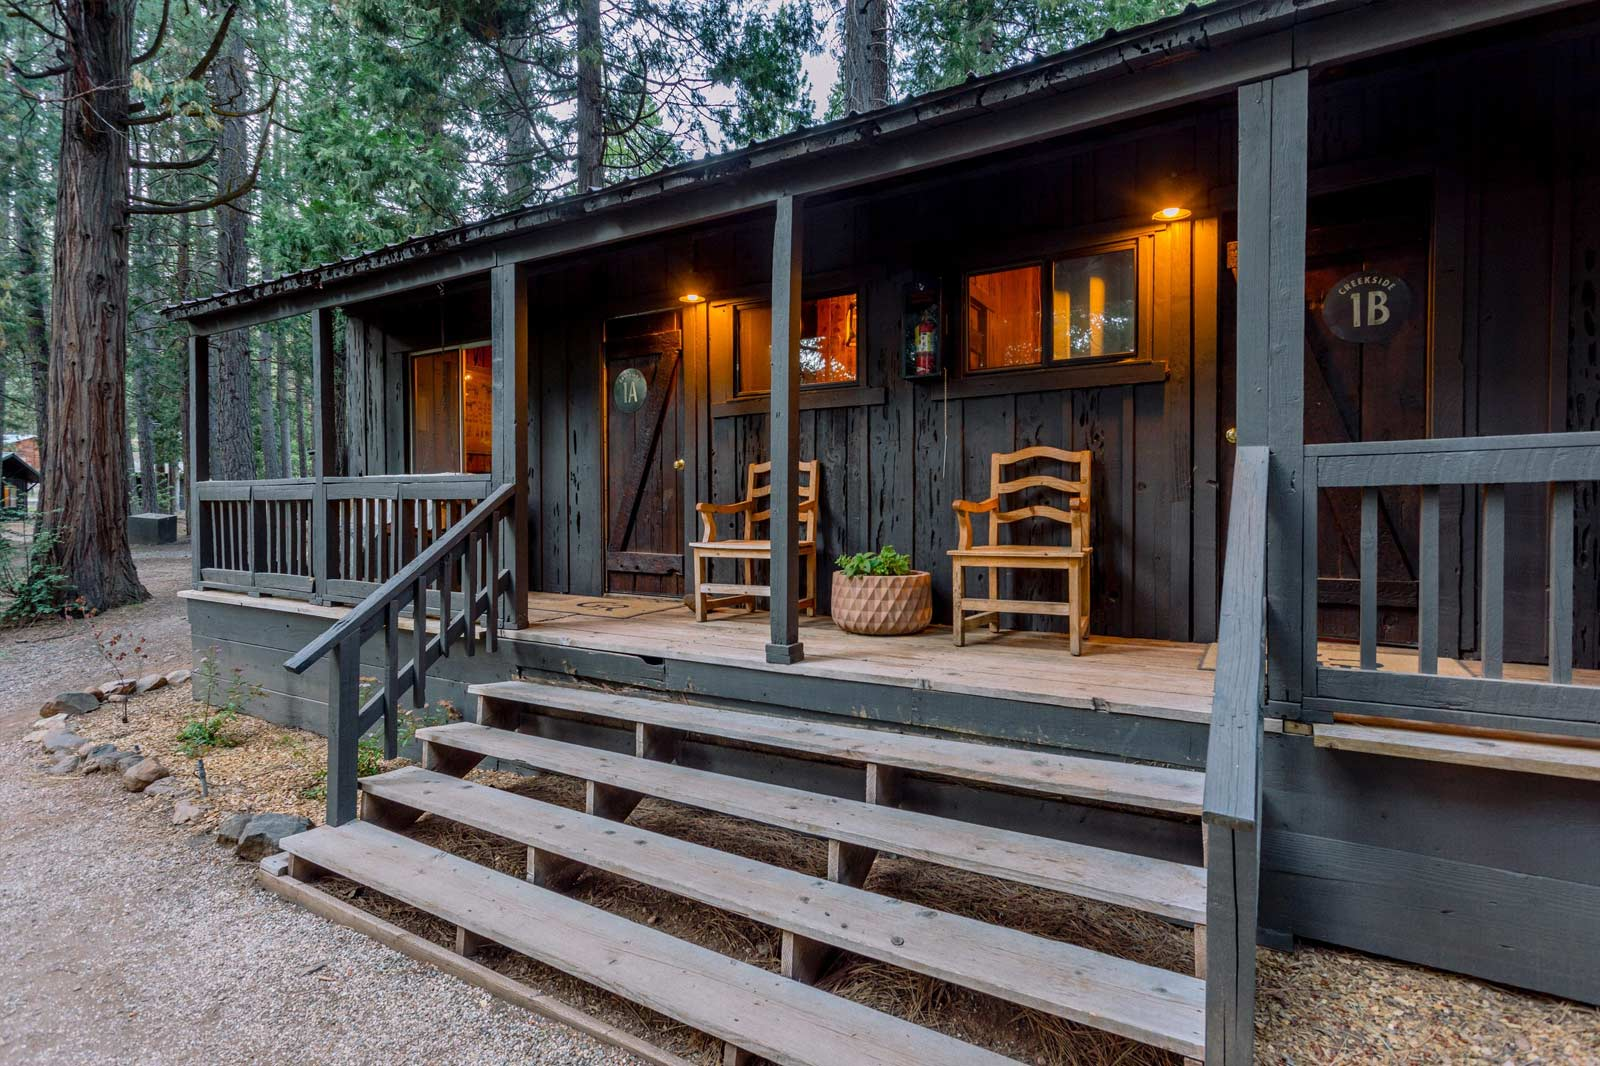 image of creekside cabin suite with stairs leading to two chairs and the entrance.